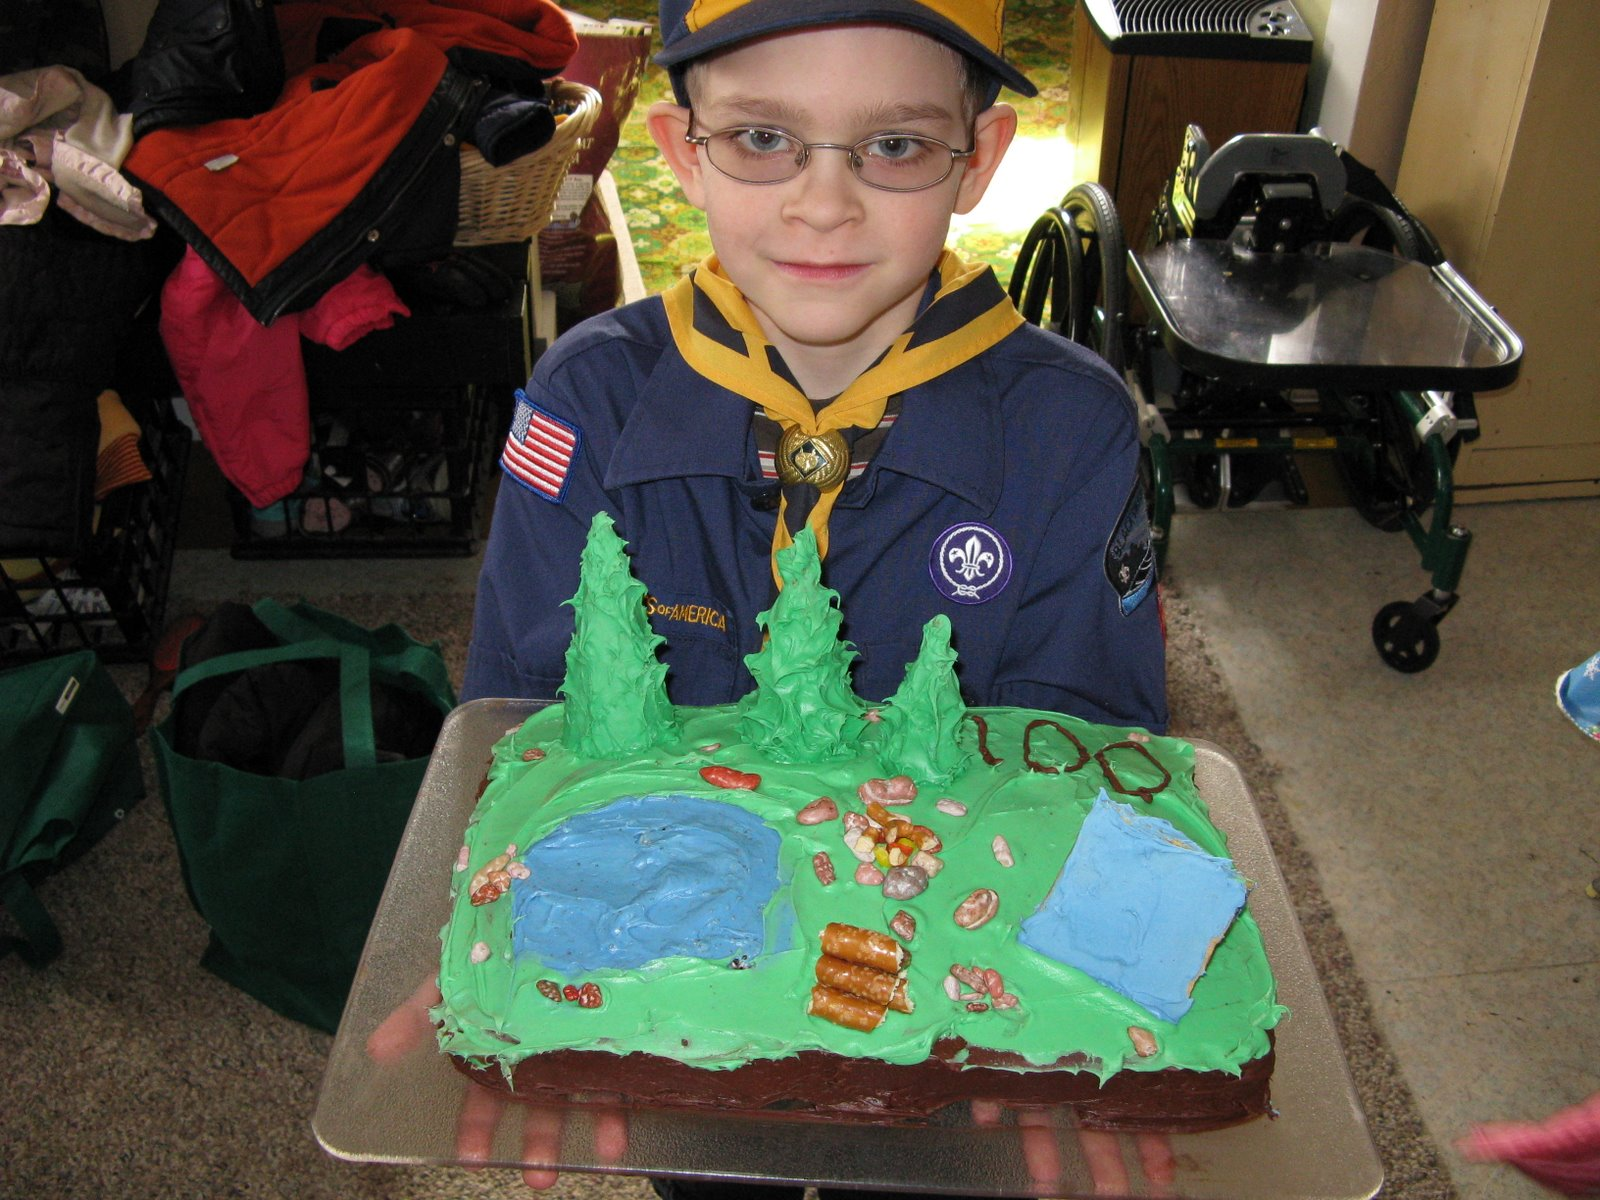 Cub Scout Blue And Gold Birthday Cake Contest Awards Bed Mattress Sale